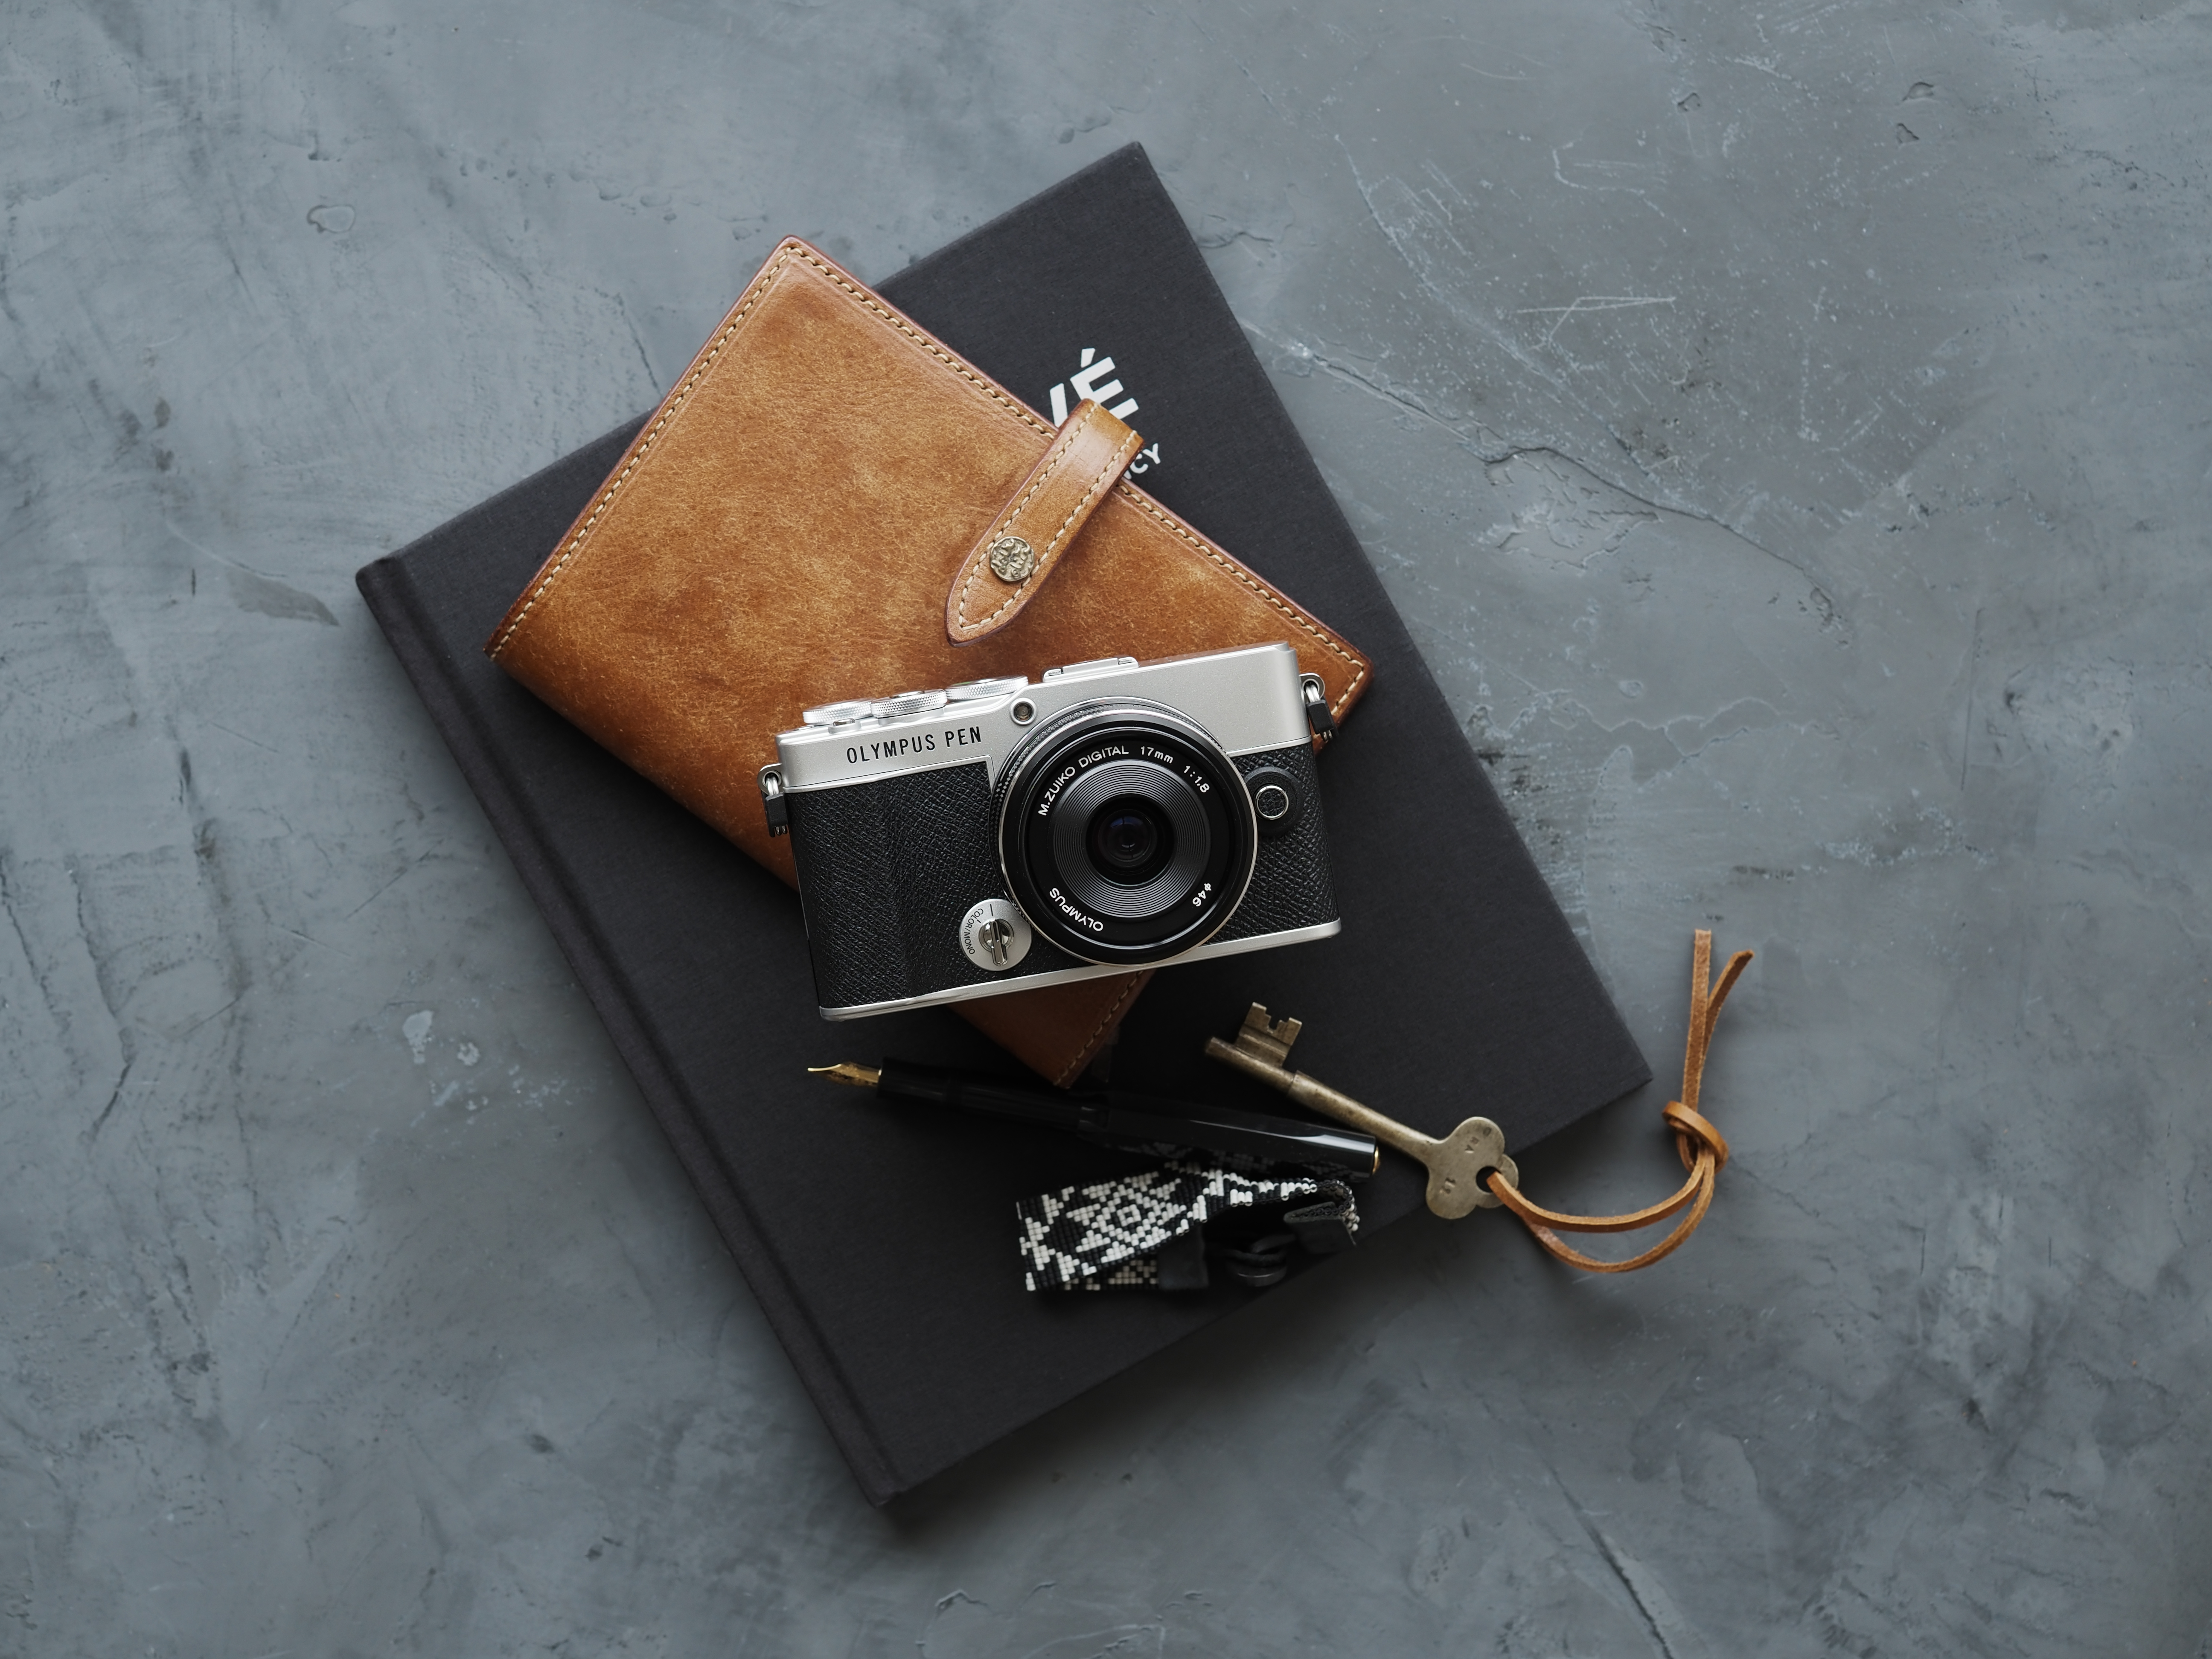 OM Digital Solutions is hoping you'll take the PEN E-P7 with you on your travels to capture image and video memories